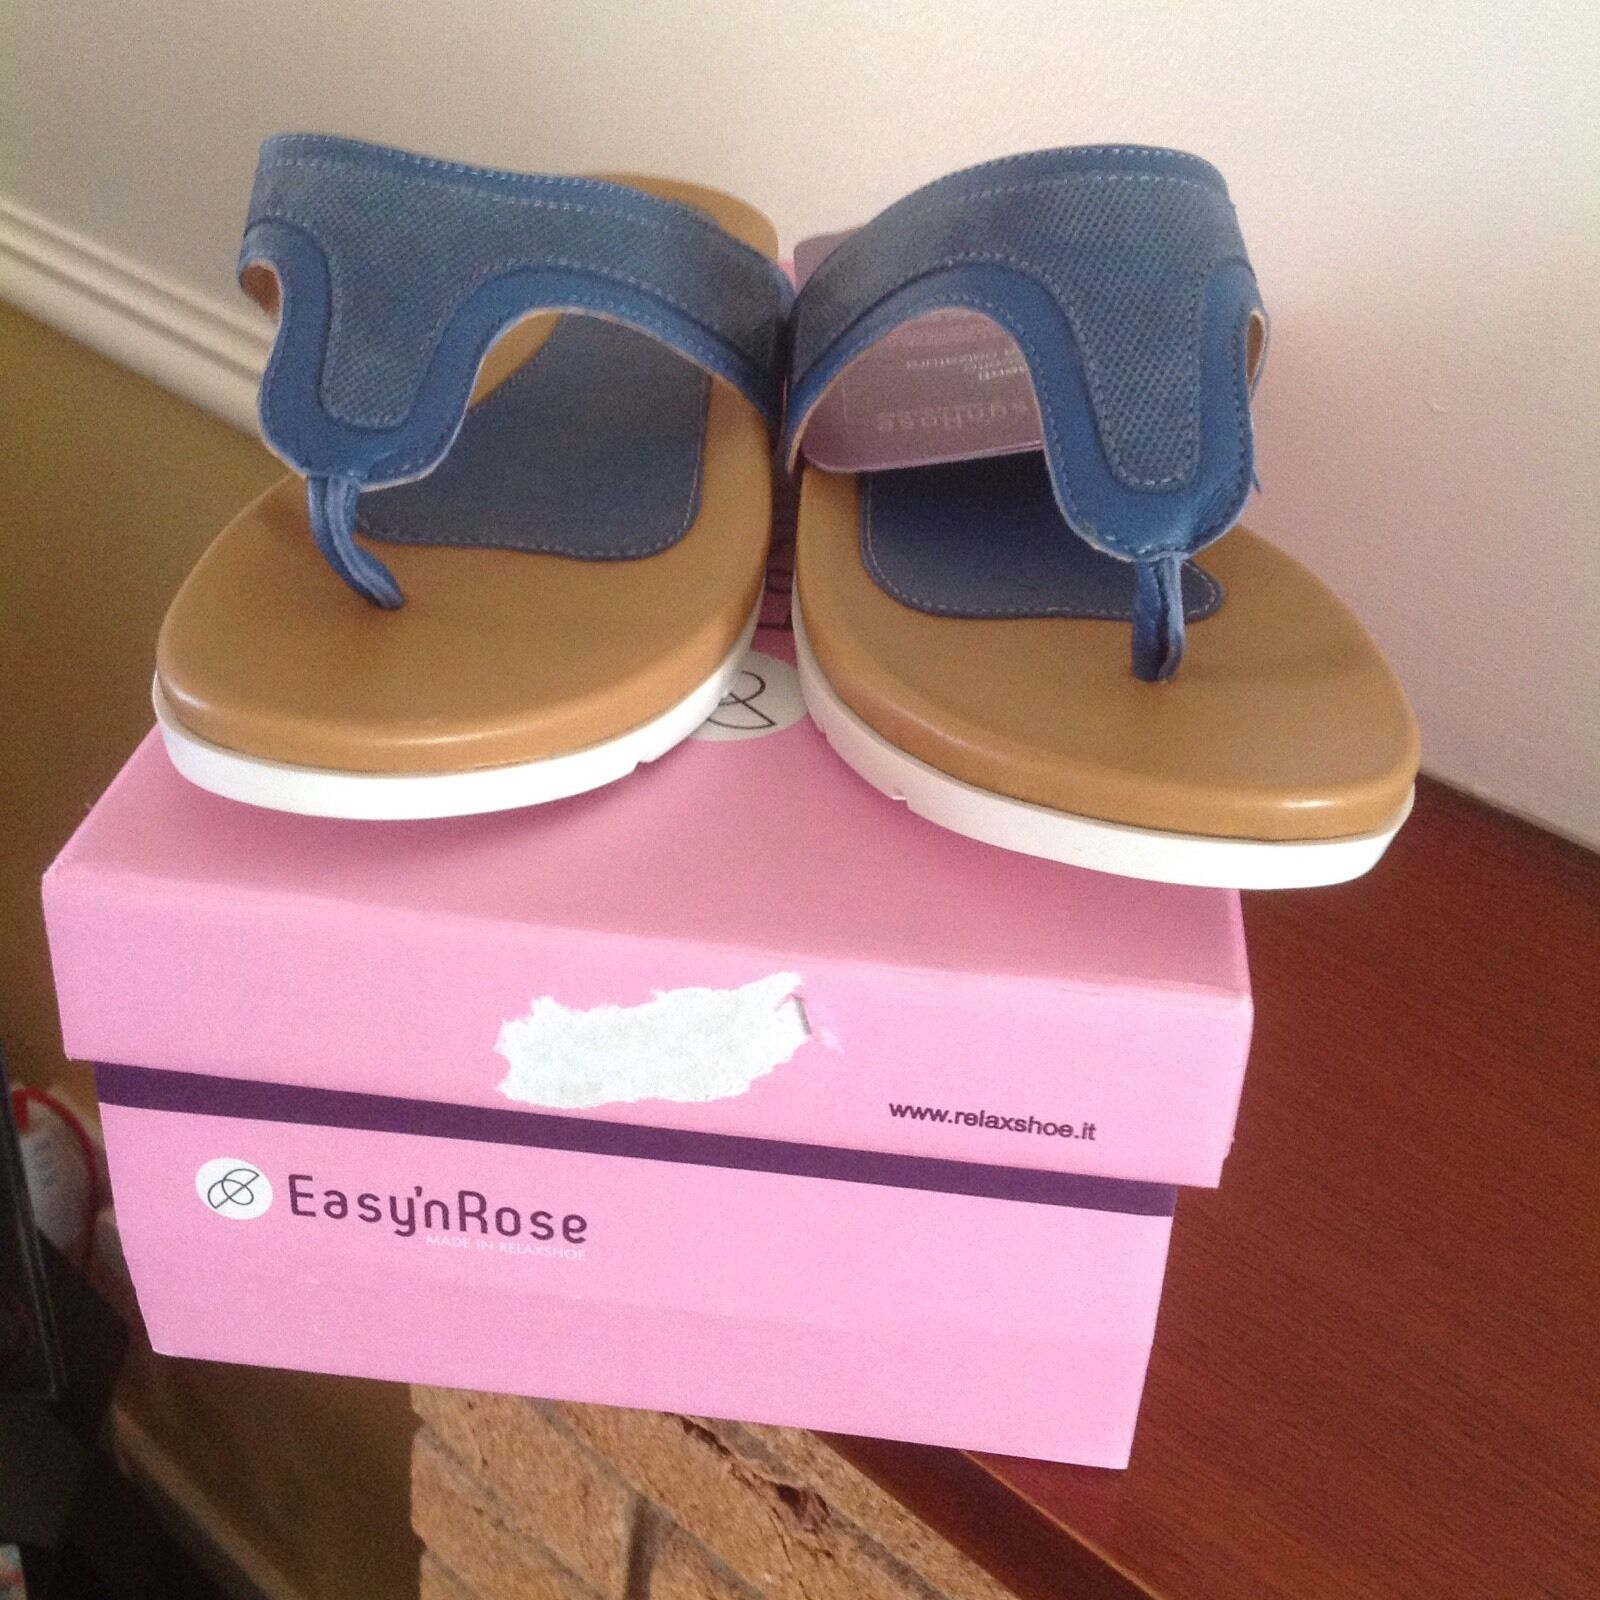 Easy'nRose Leather Sandals in Navy size UK 6 EU 39